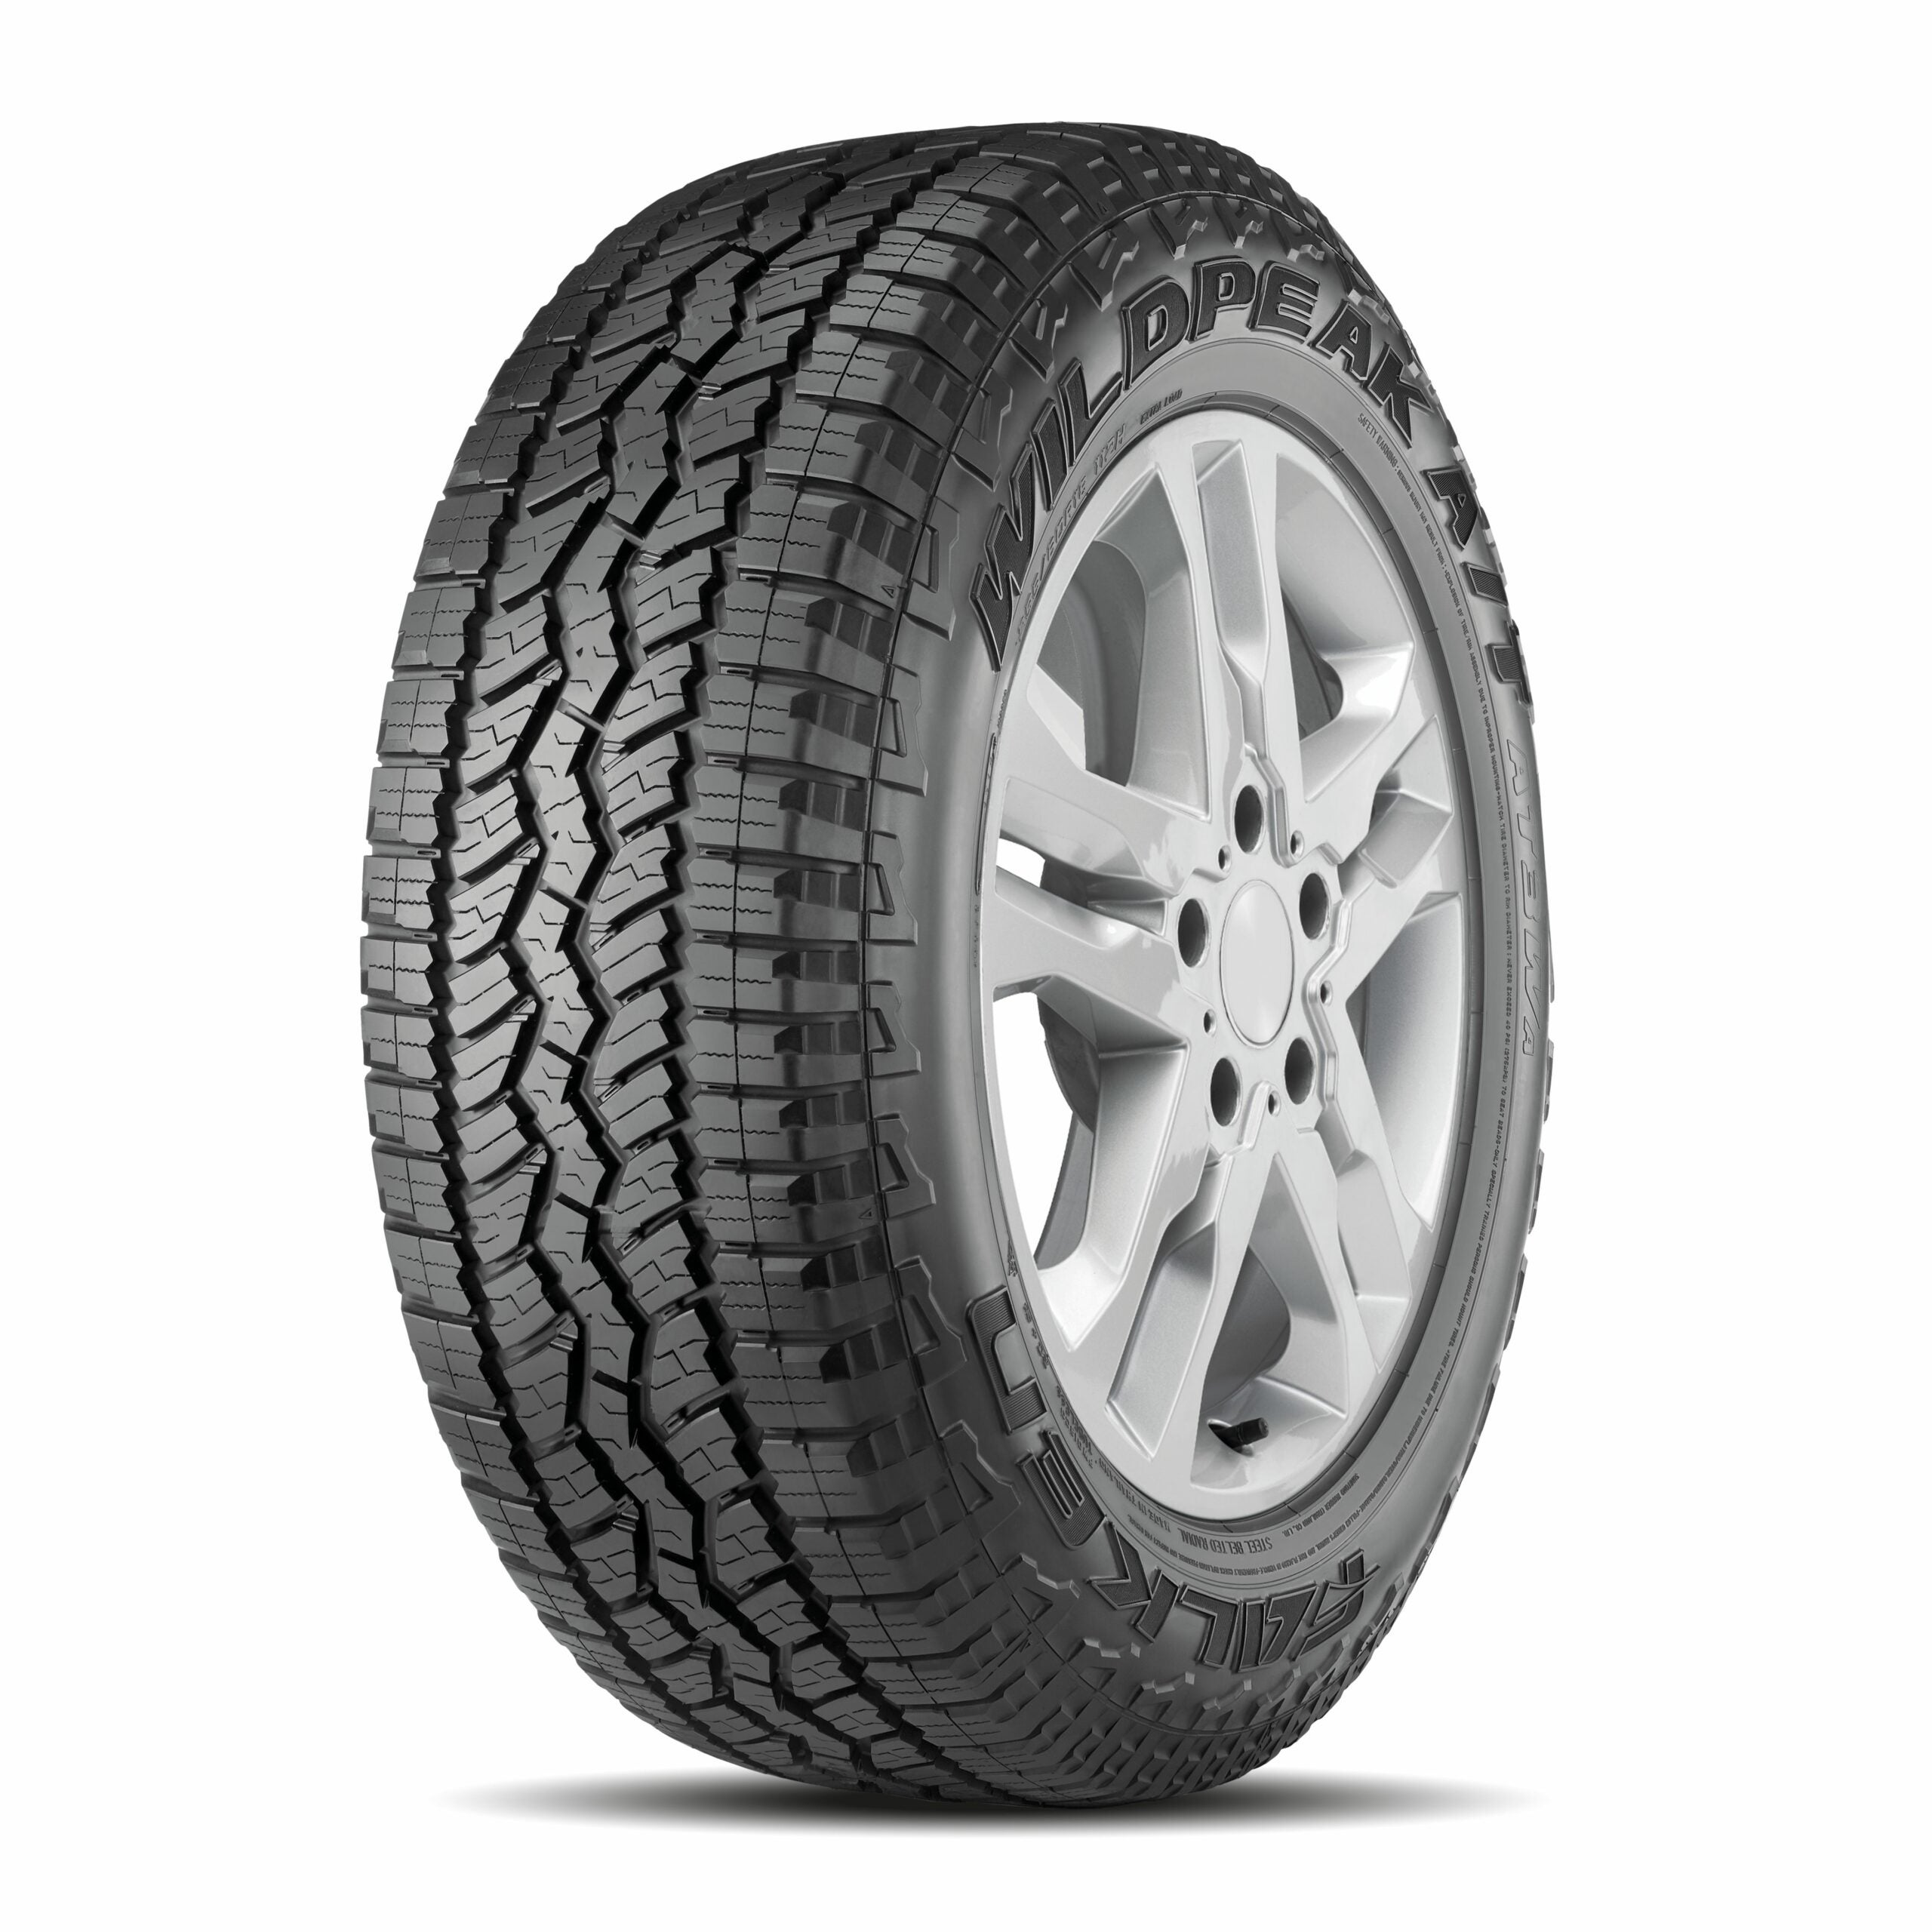 Expect to pay a little more for Falken tires.